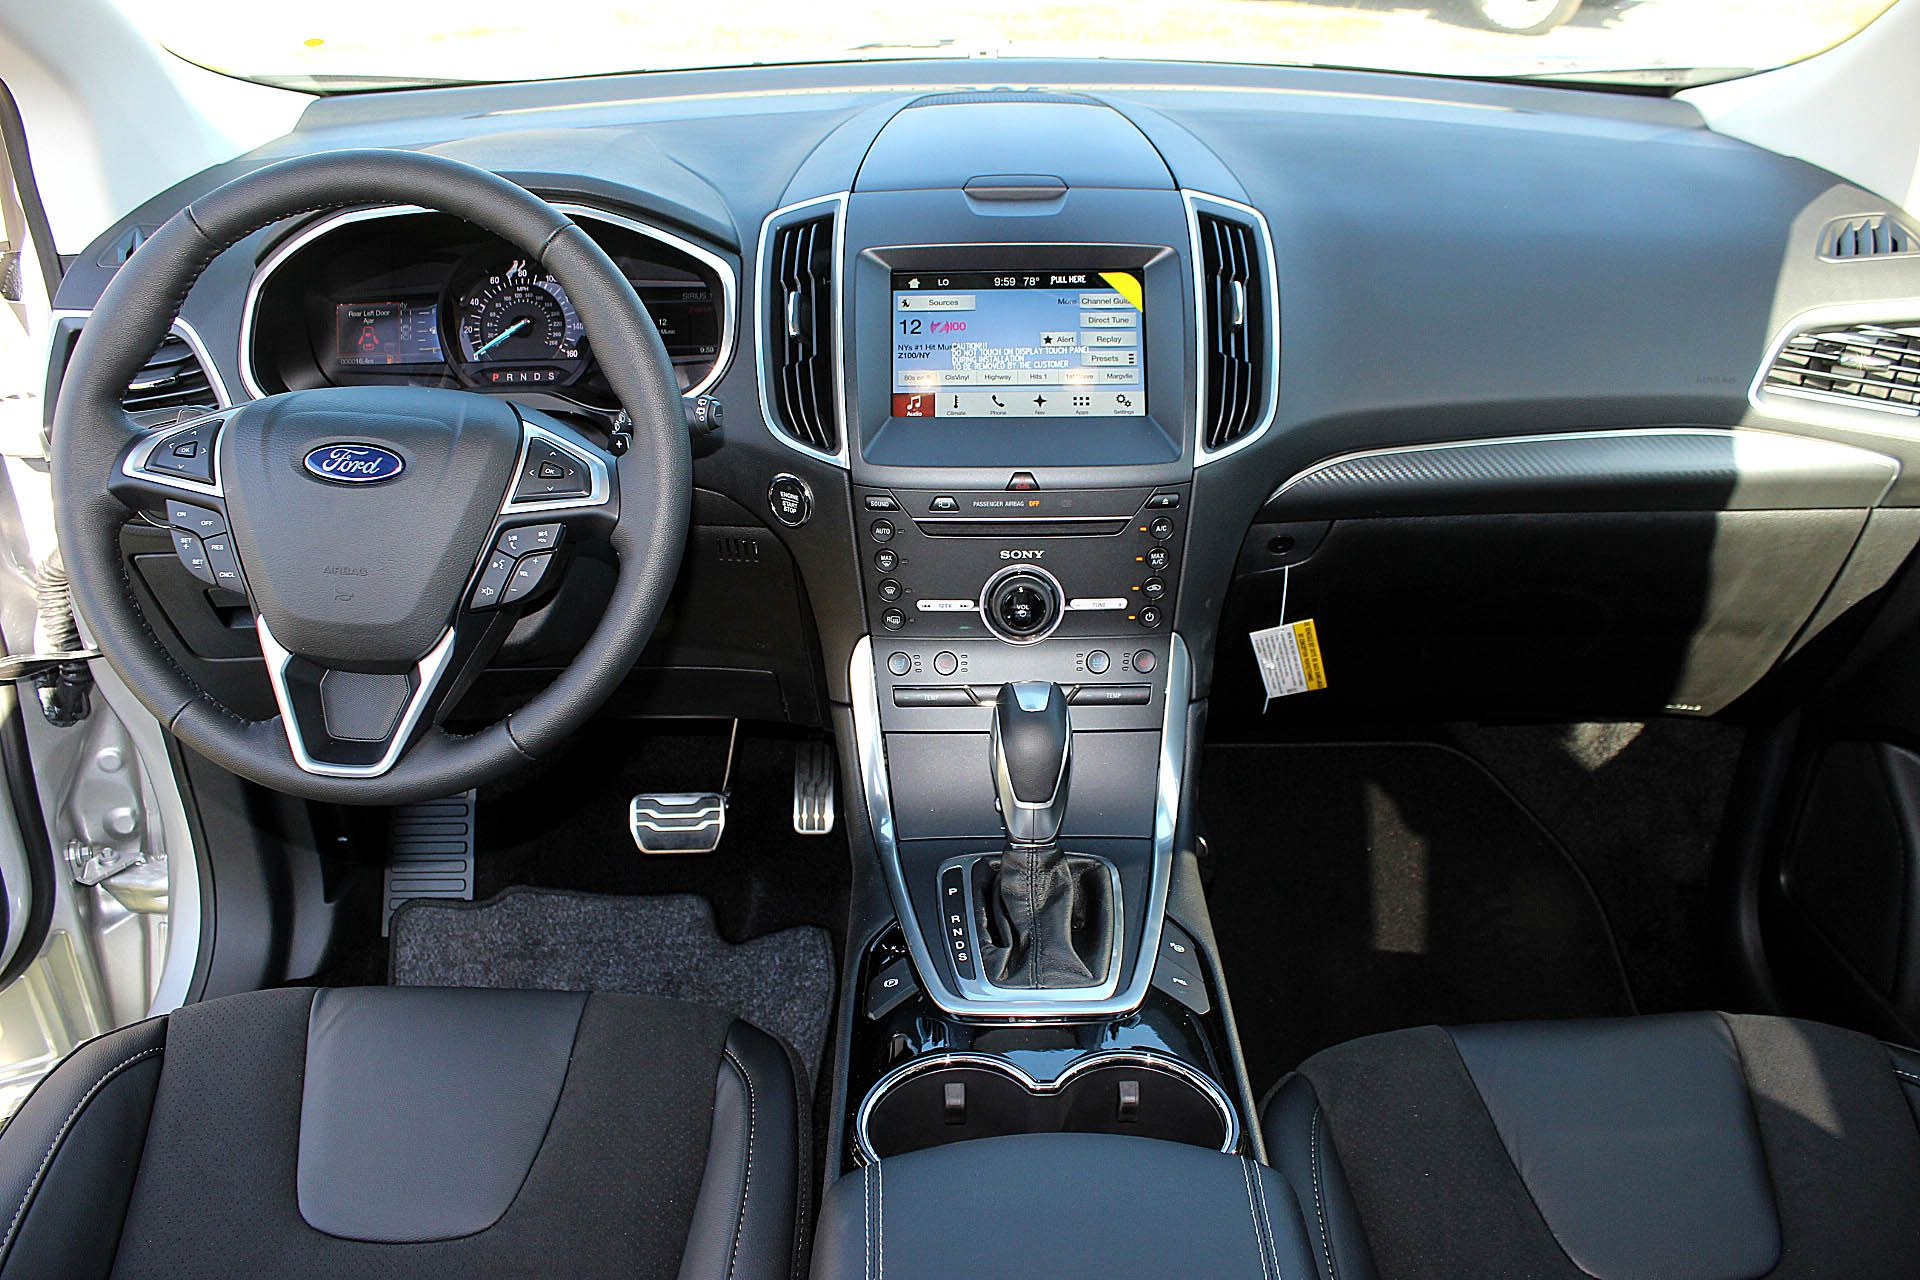 Ford Edge Interior Options